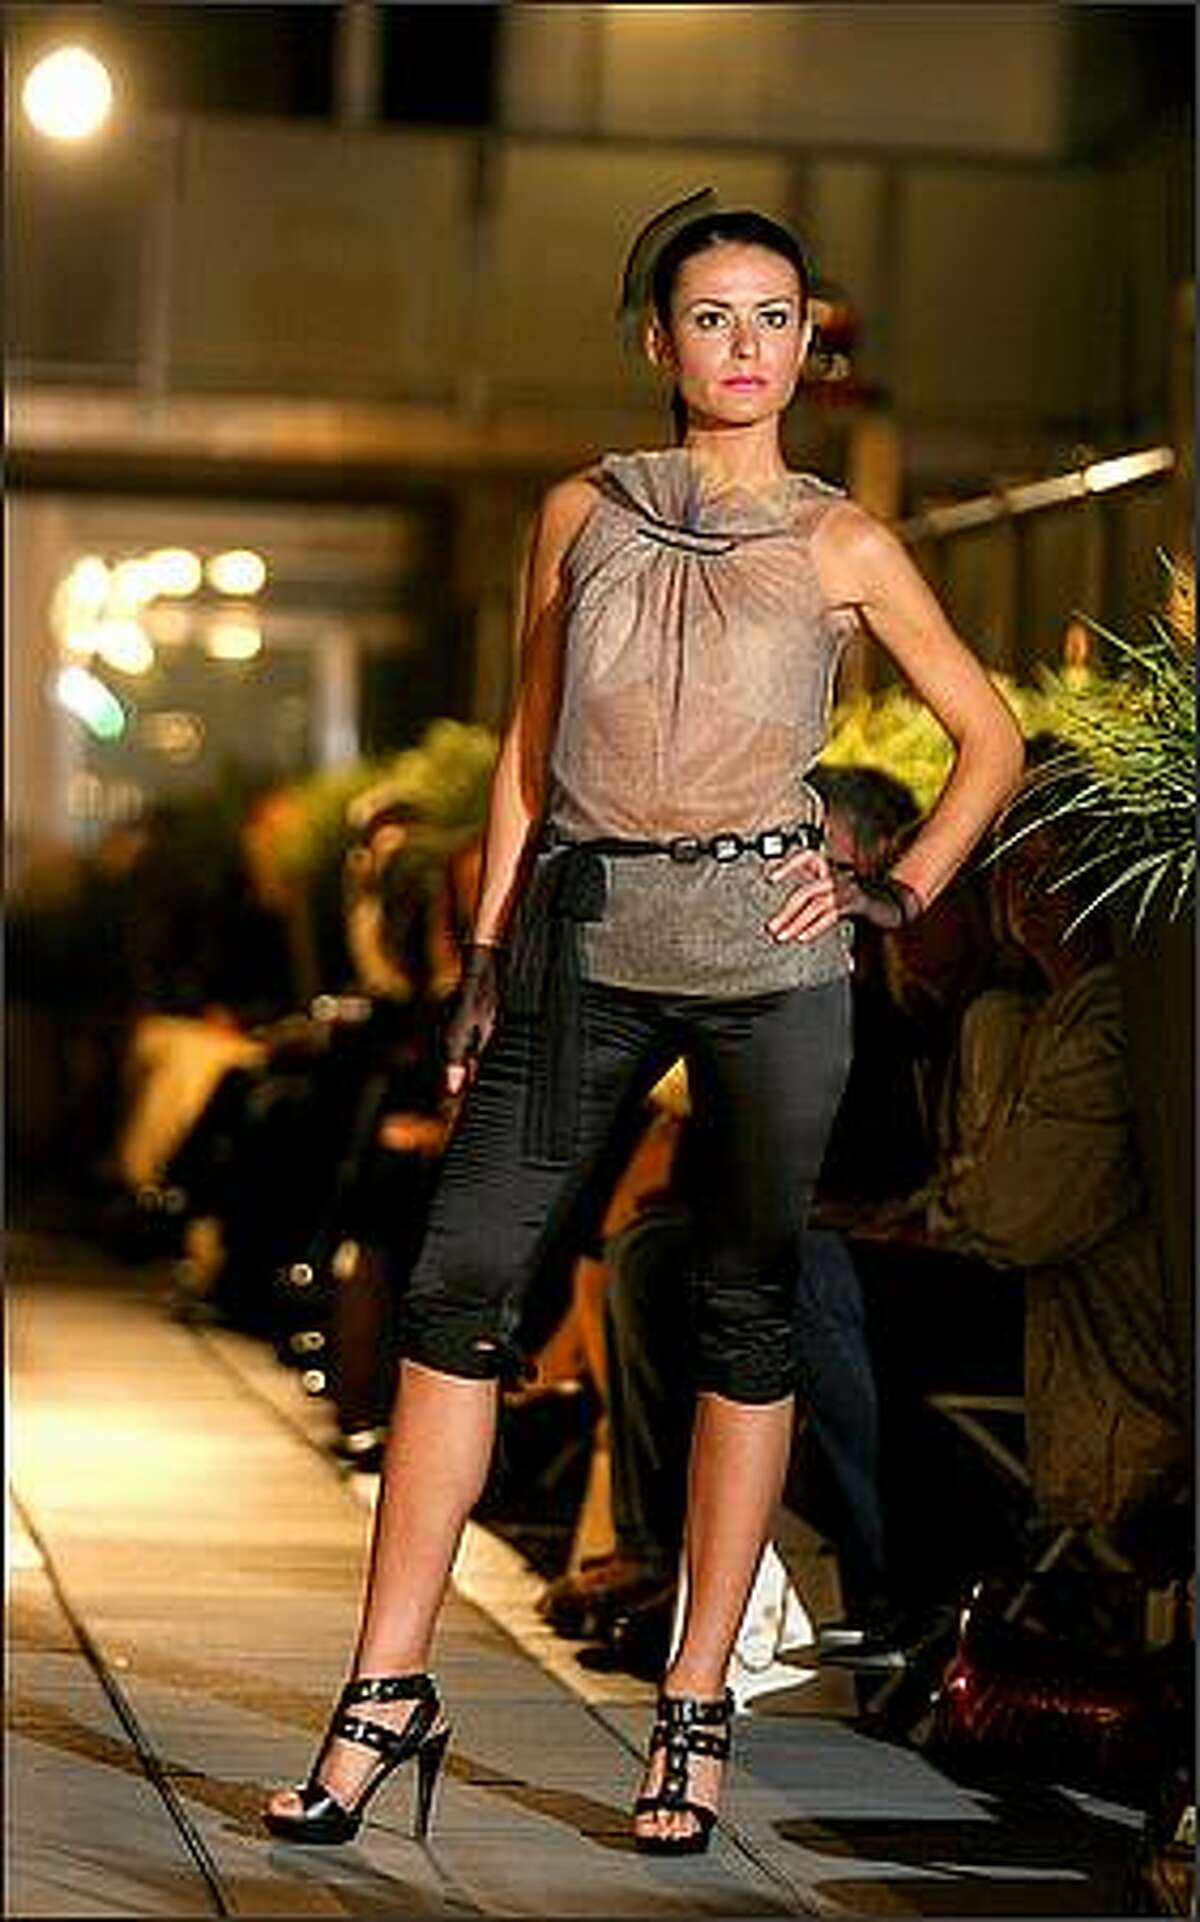 Madina Vadache unveiled her Spring 2009 ready-to-wear collection, Liquid Dreams at the Lumen Garden Courtyard in Seattle.